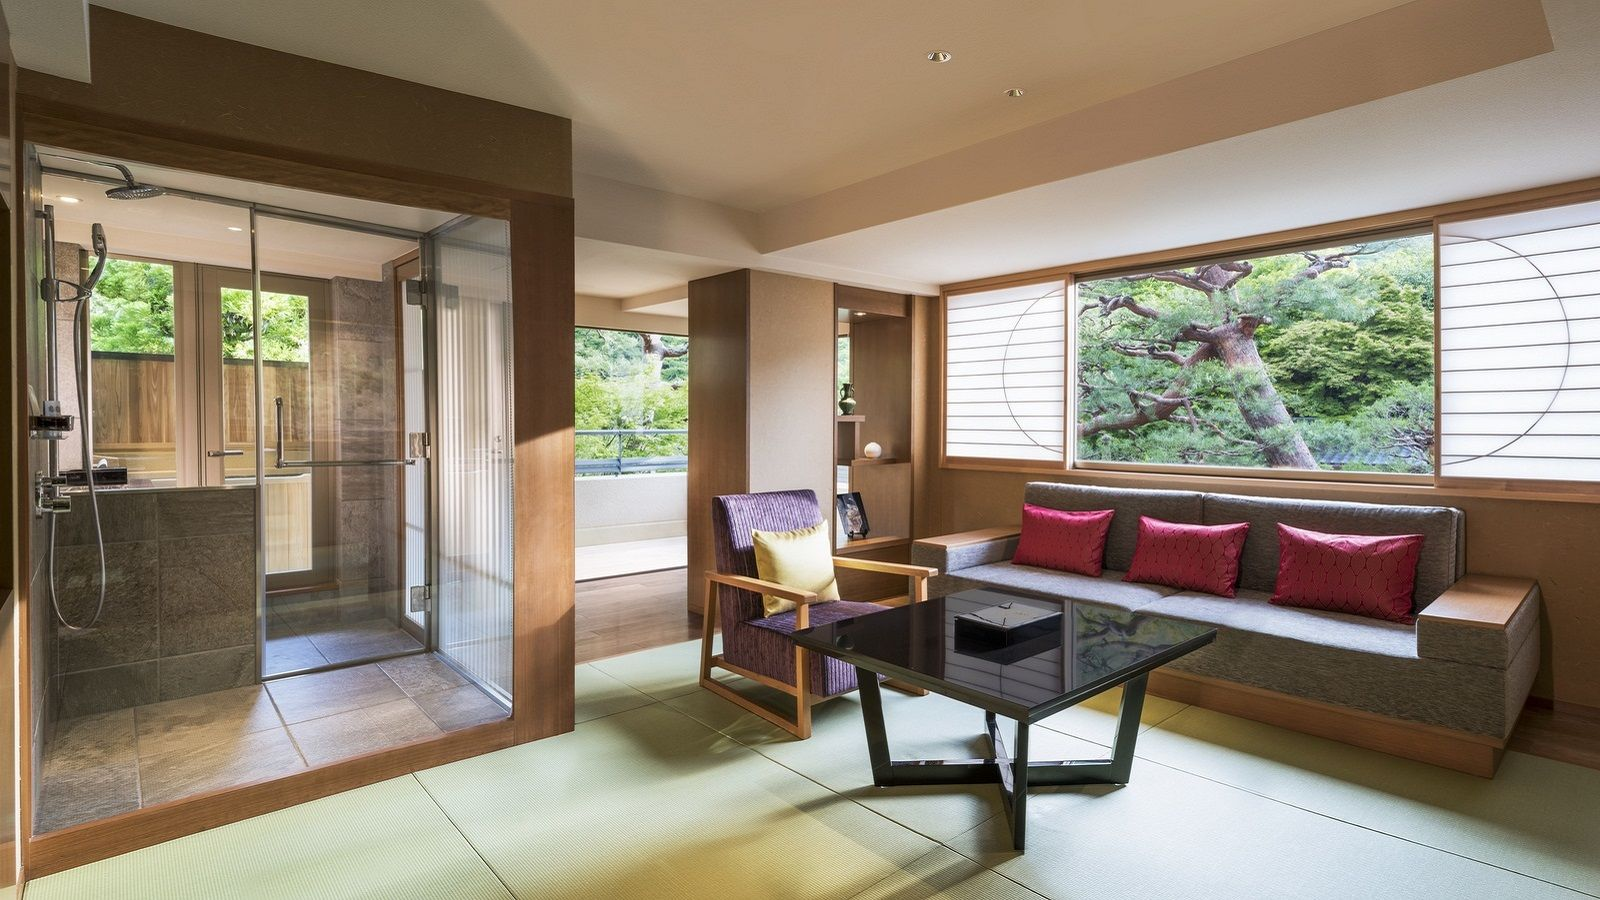 AKATOKITSUYU EXECUTIVE SUITE